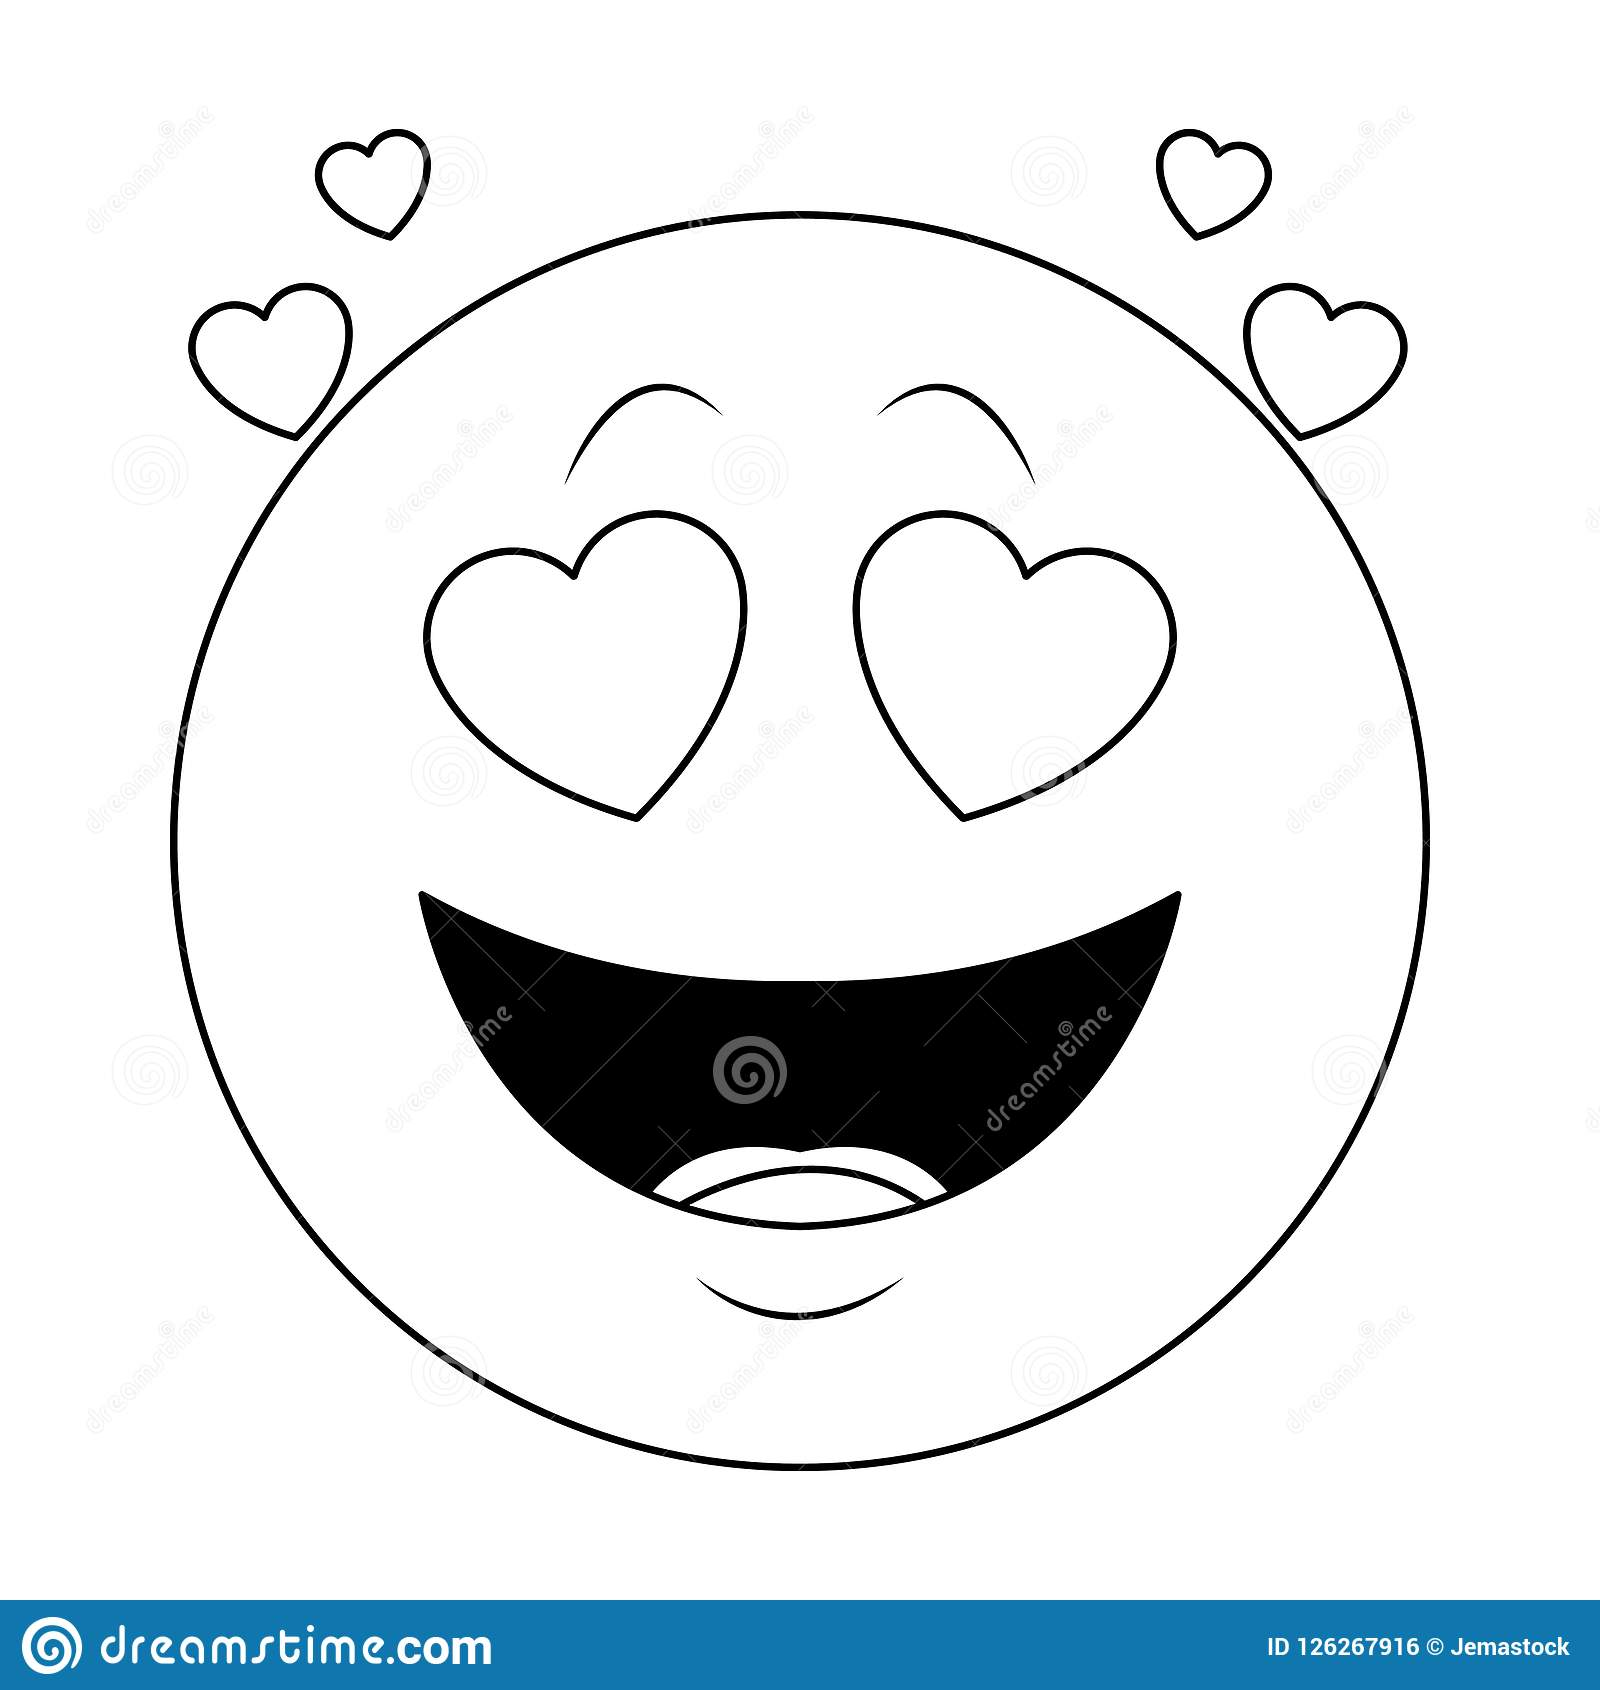 In Love Chat Emoticon In Black And White Stock Vector Illustration Of Happy Social 126267916